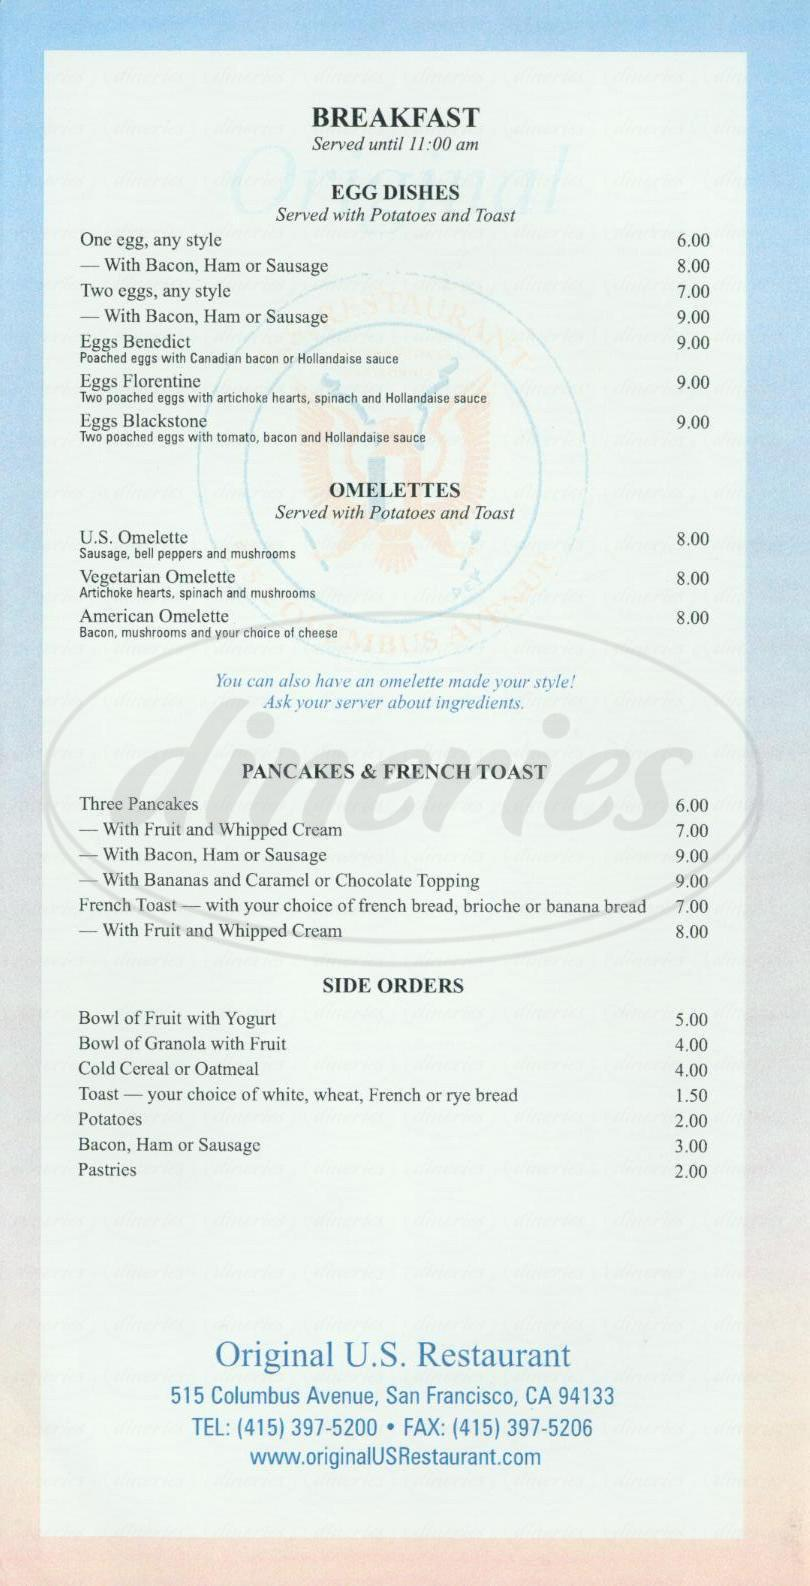 menu for Original US Restaurant